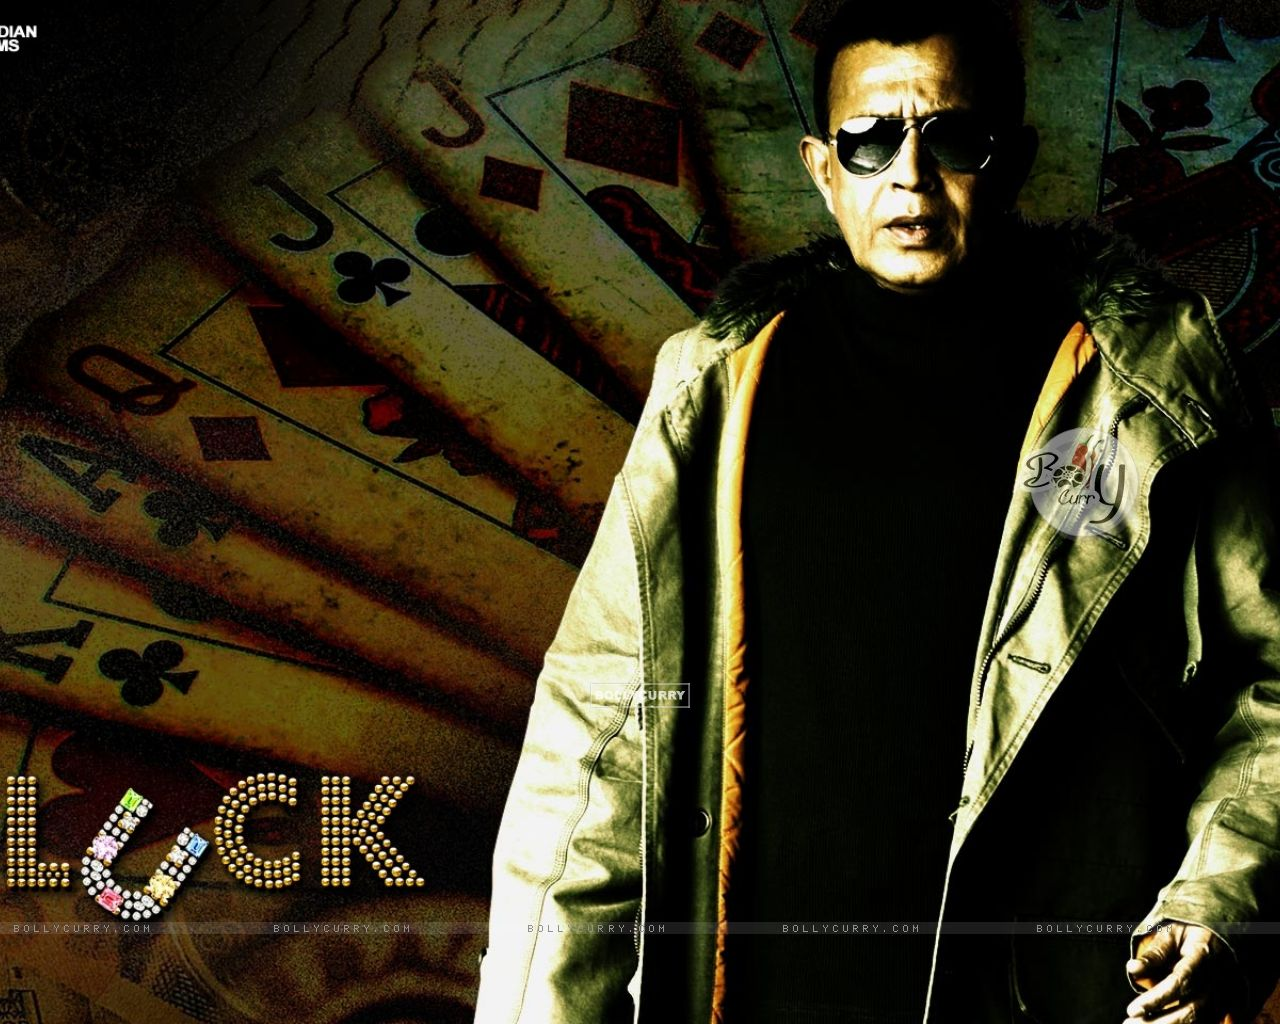 Mithun Chakraborty wallpaper from movie Luck (20324) size:1280x1024